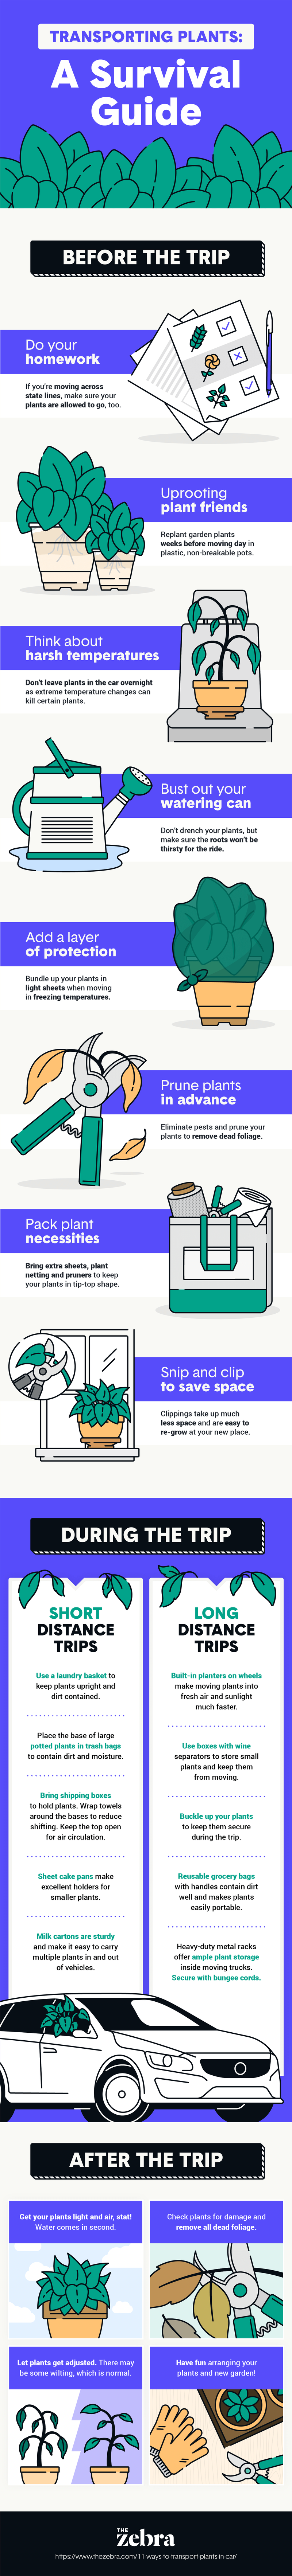 Transporting Plants: A Survival Guide [Infographic] | ecogreenlove